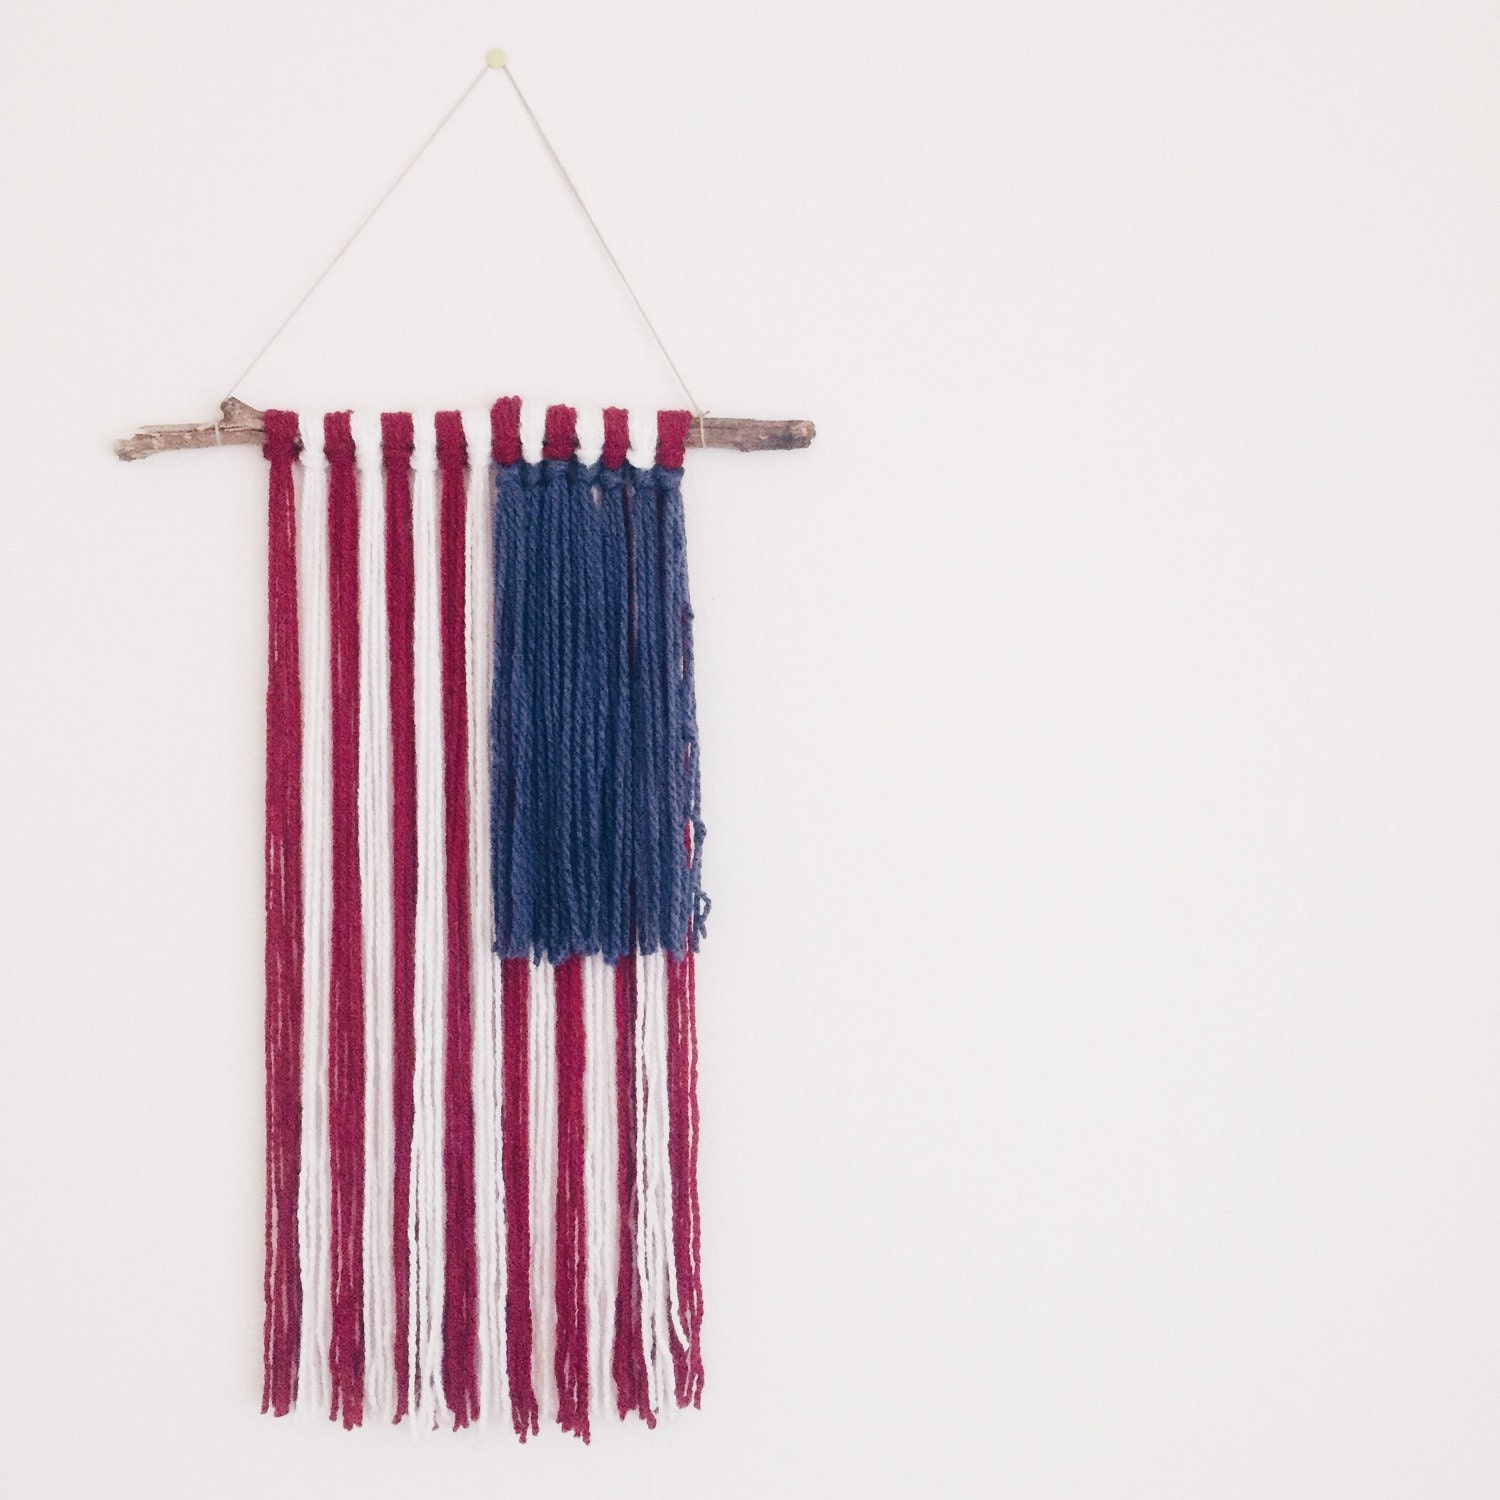 yarn wall hanging american flag. Black Bedroom Furniture Sets. Home Design Ideas